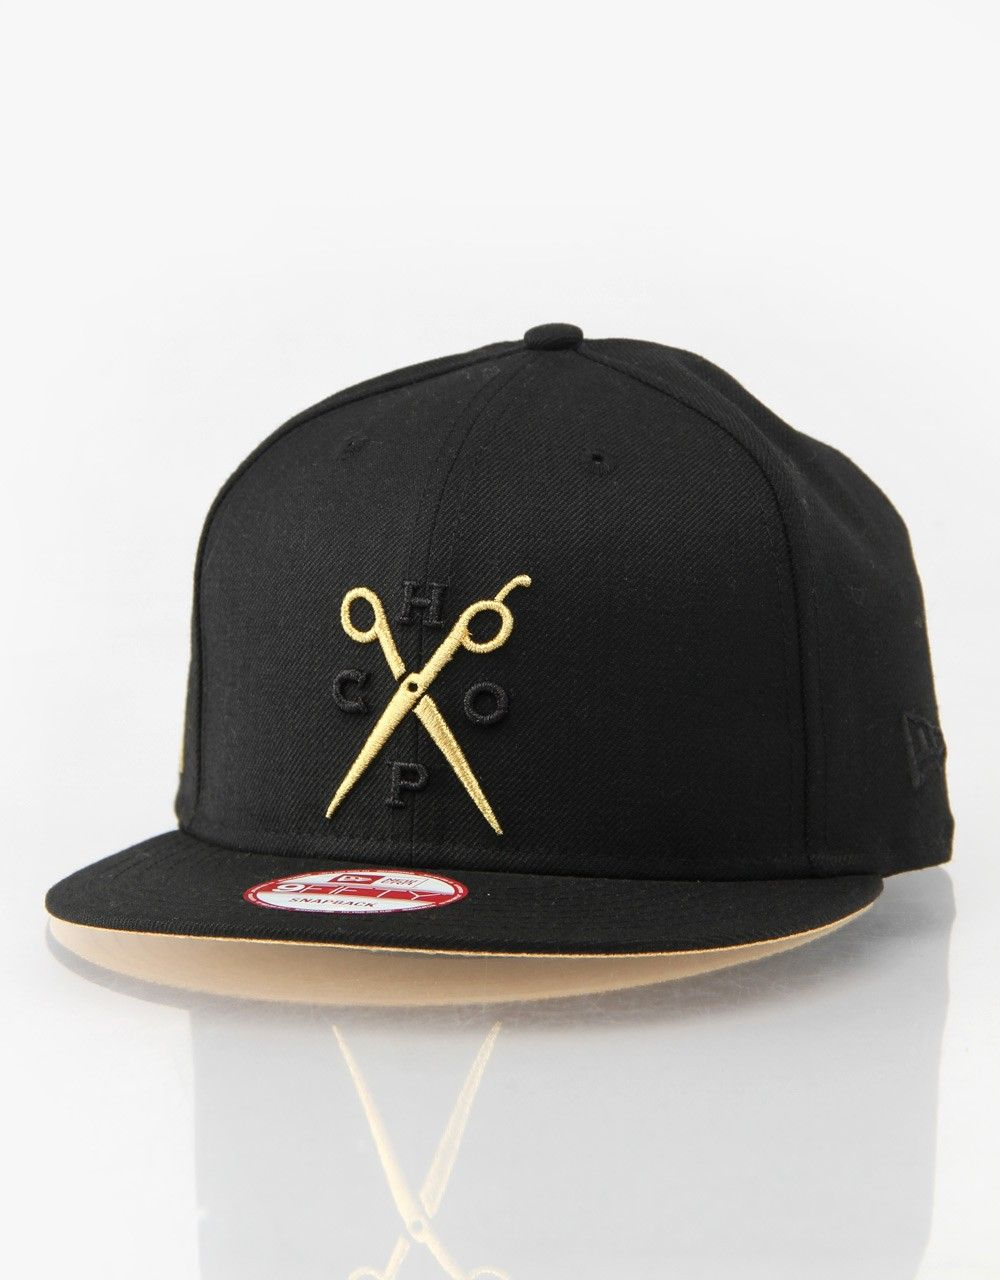 Franks Chop Shop Gold Scissors New Era Snapback Cap  40bd04333